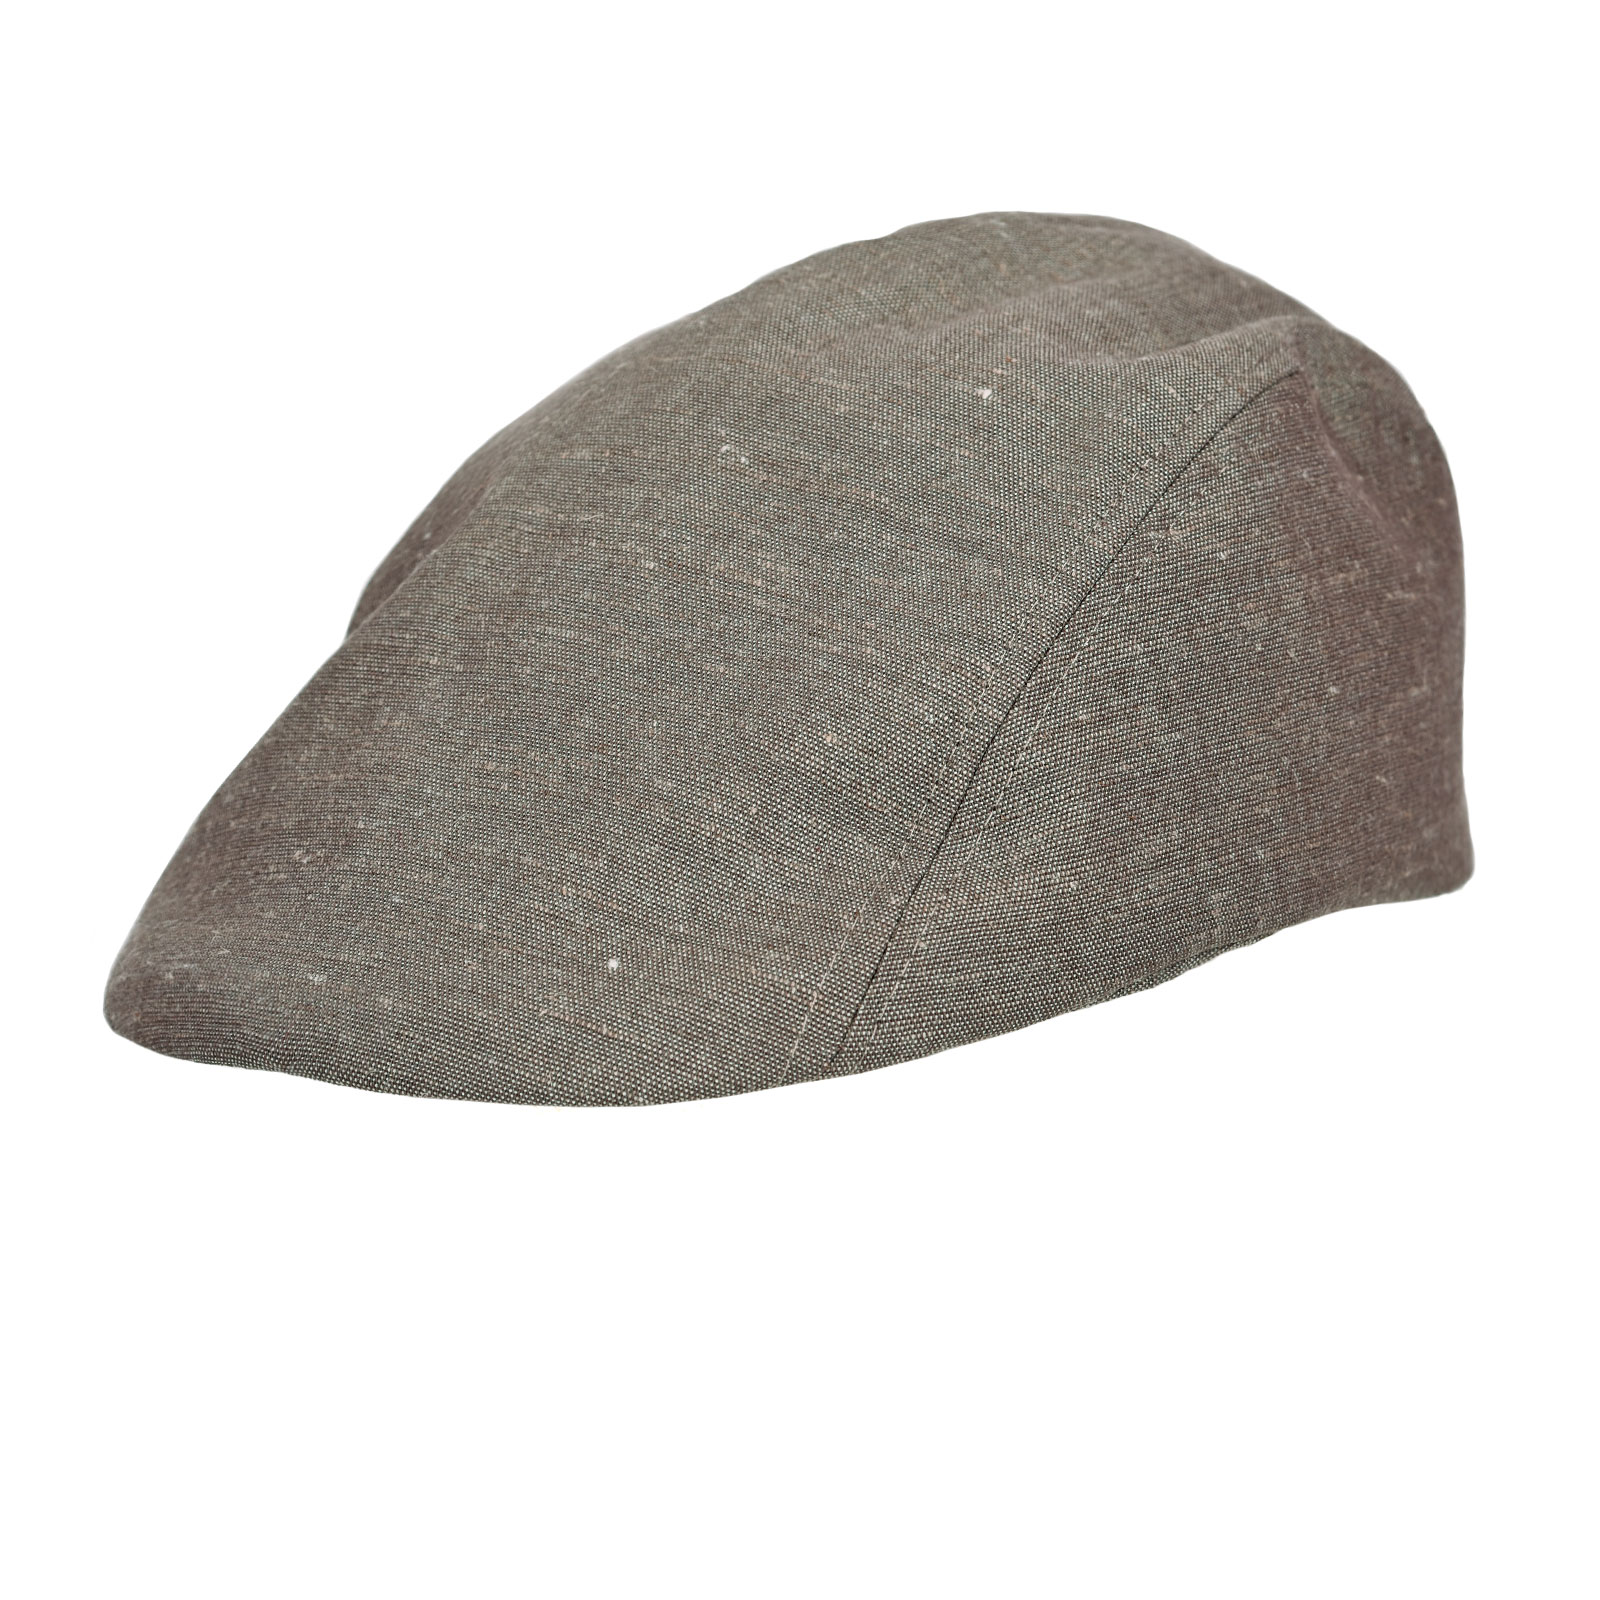 CP-00970-F16-P-casquette-plate-homme-lin-naturel